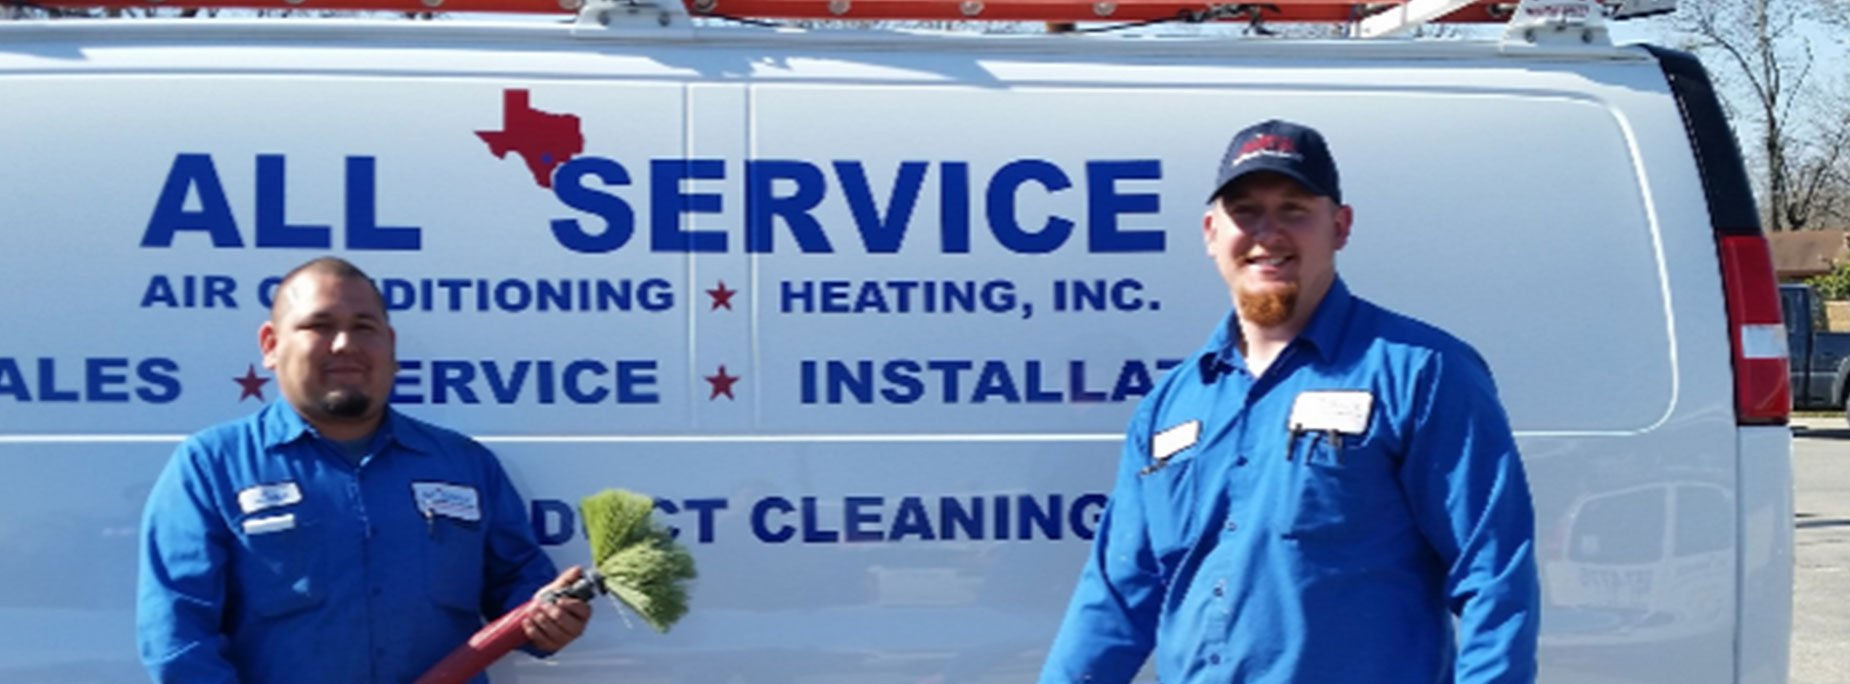 All Service Air Conditioning & Heating